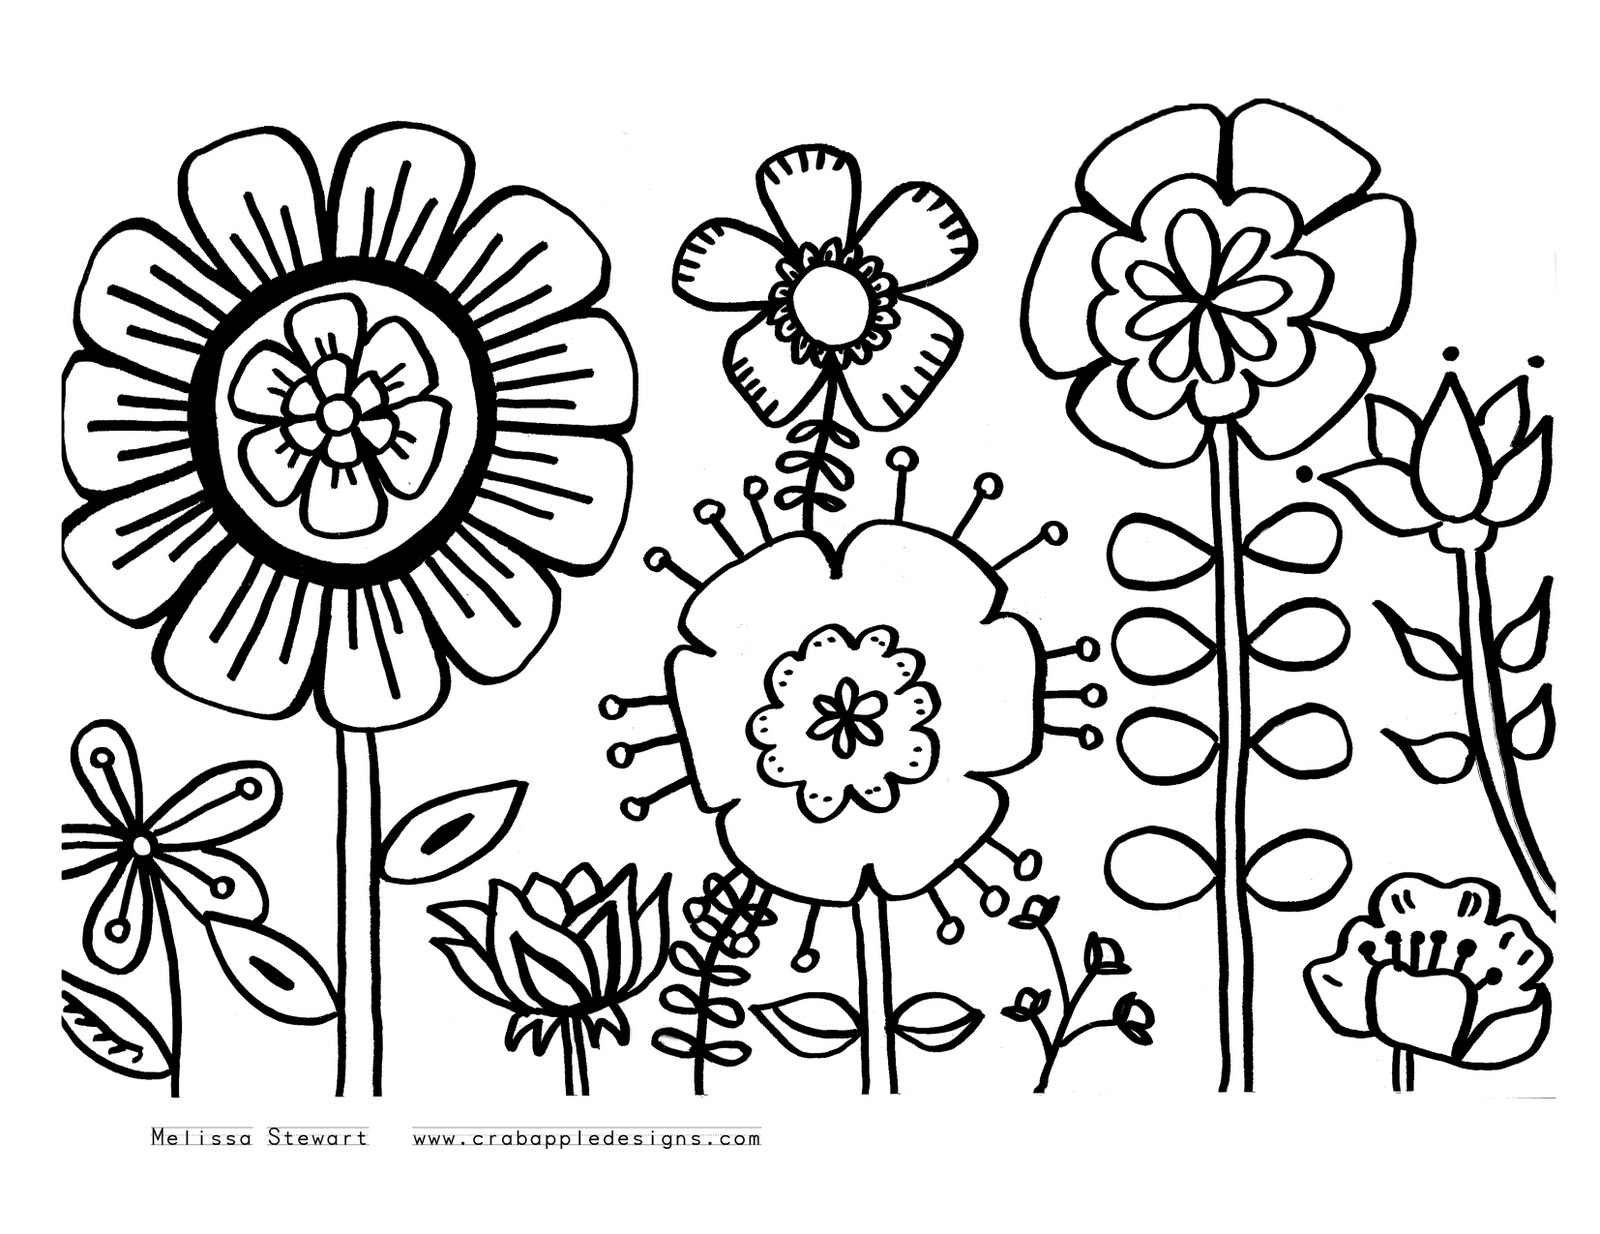 Cflower coloring pages ~ At Home With Crab Apple Designs: November 2011